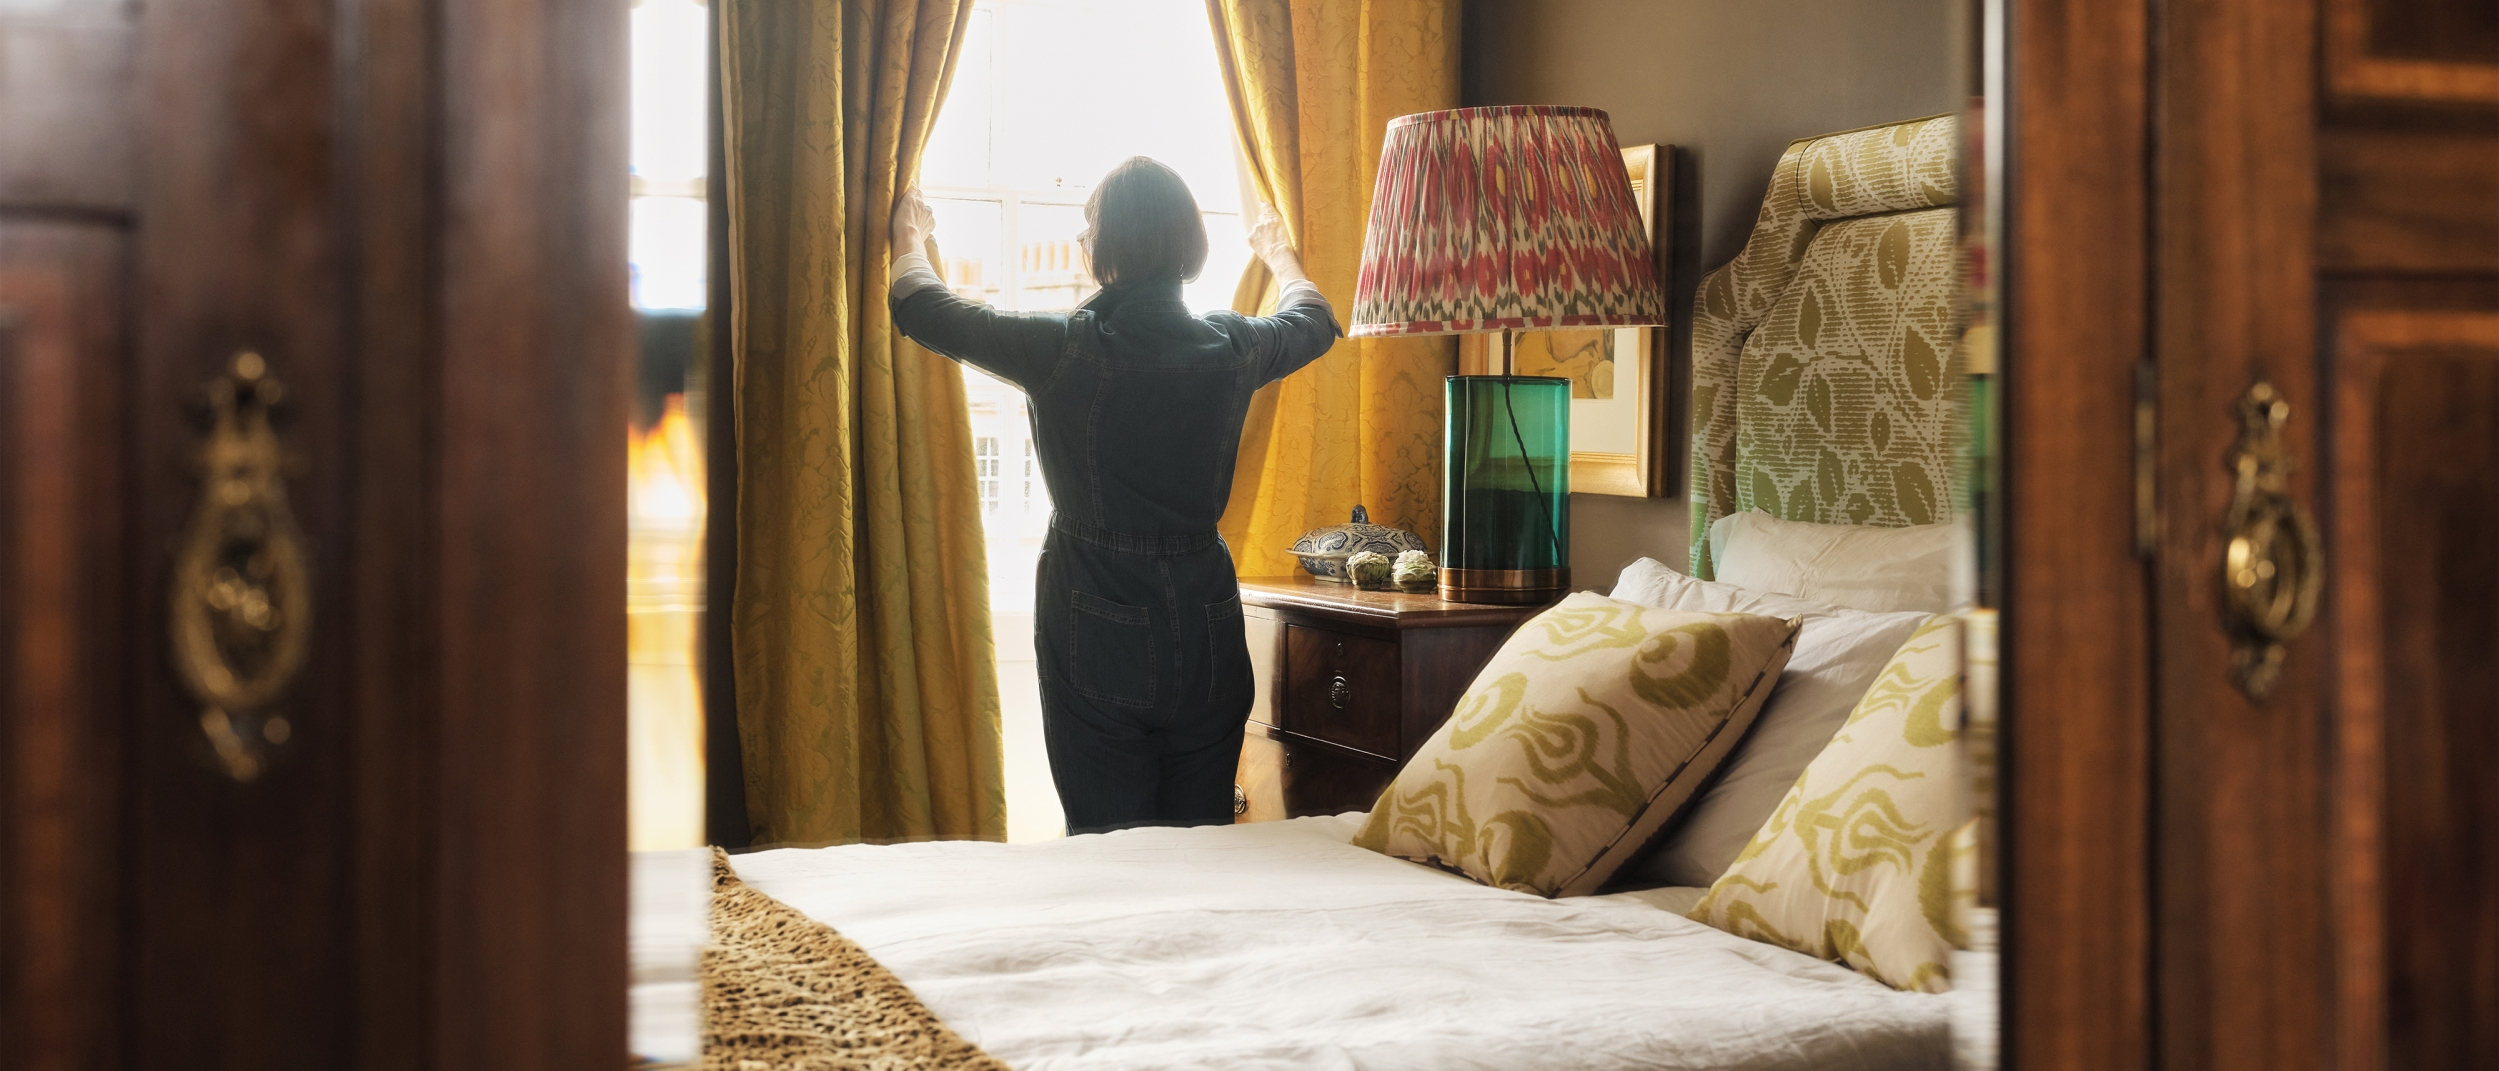 A woman opens the curtains and light pours into the bedroom of her Airbnb listing.